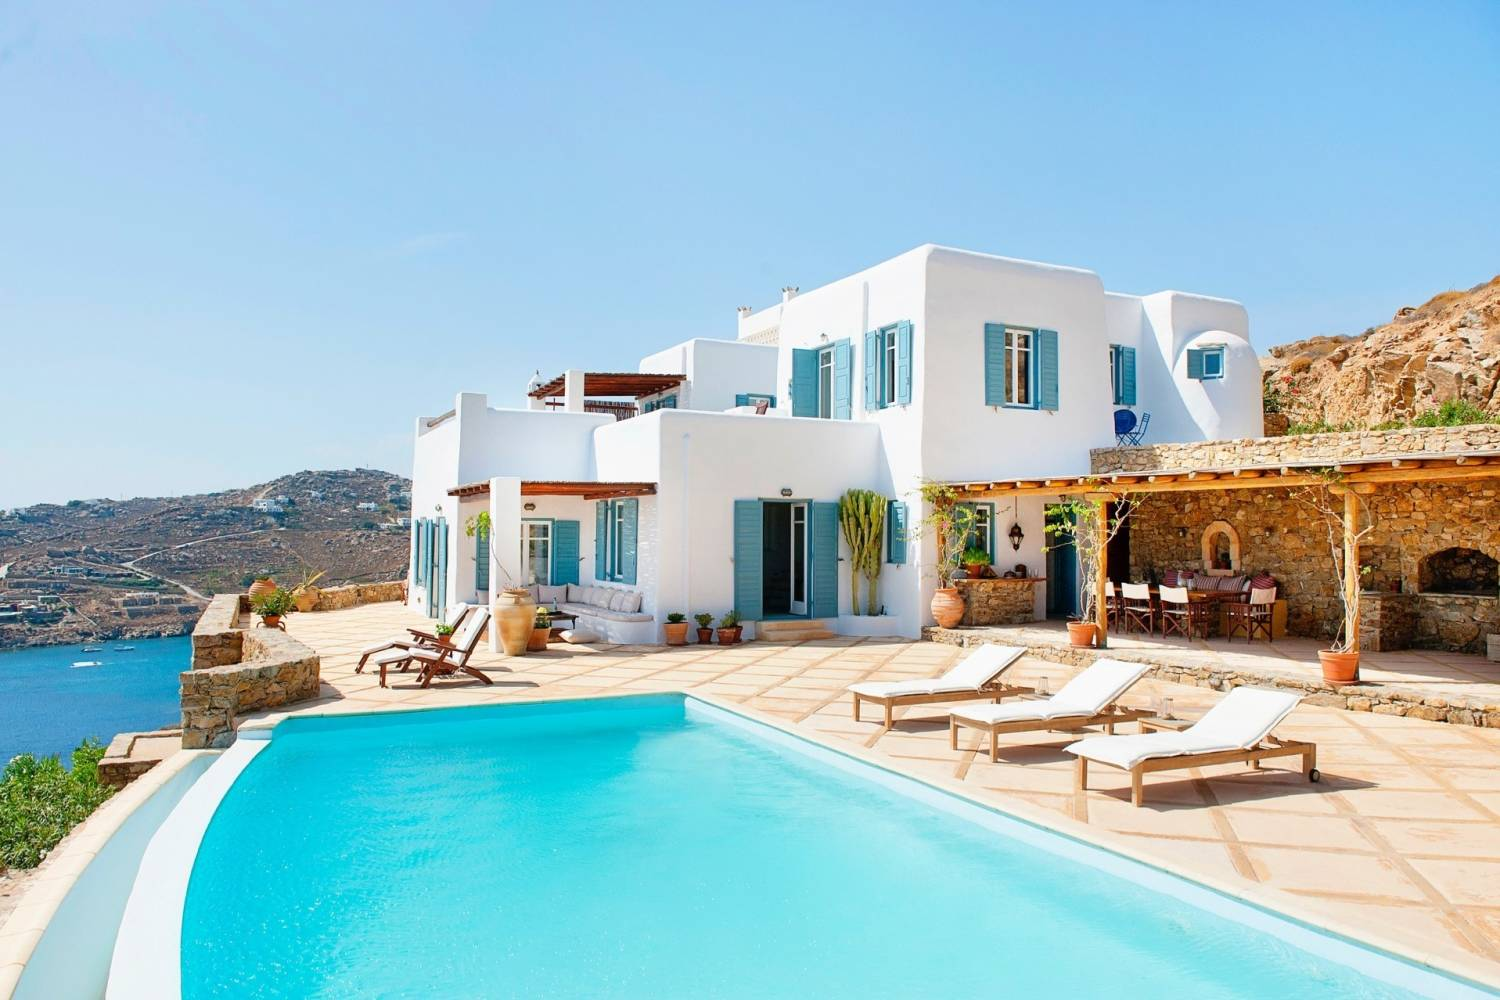 Enjoy a private chef after an amazing day in Mykonos - Take a Chef